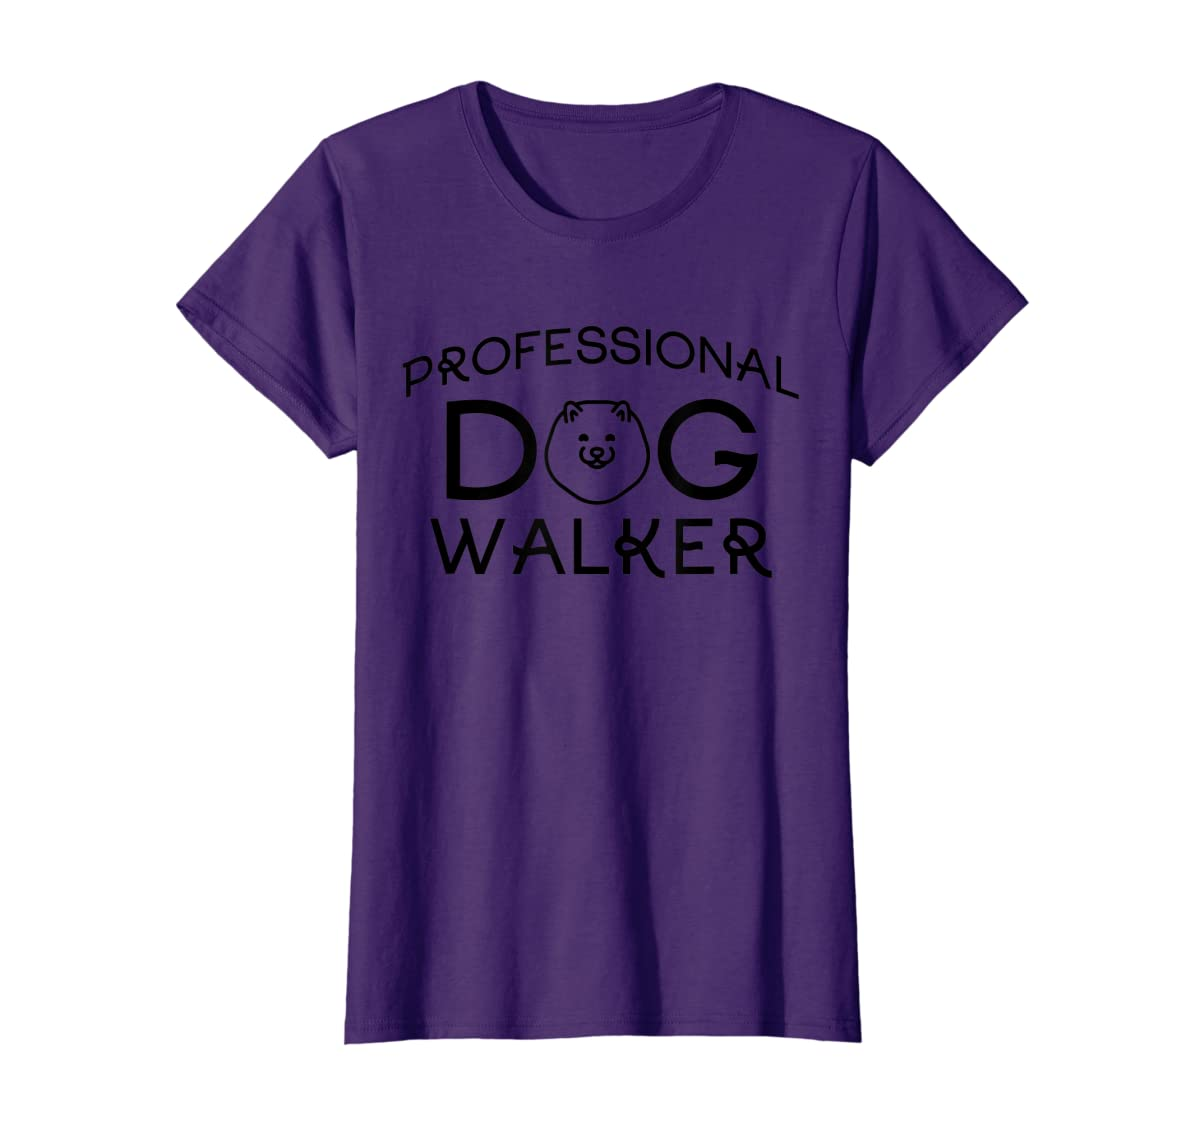 Professional Dog Walker Cute Puppy Tshirt Pet Lover T-Shirt-Women's T-Shirt-Purple